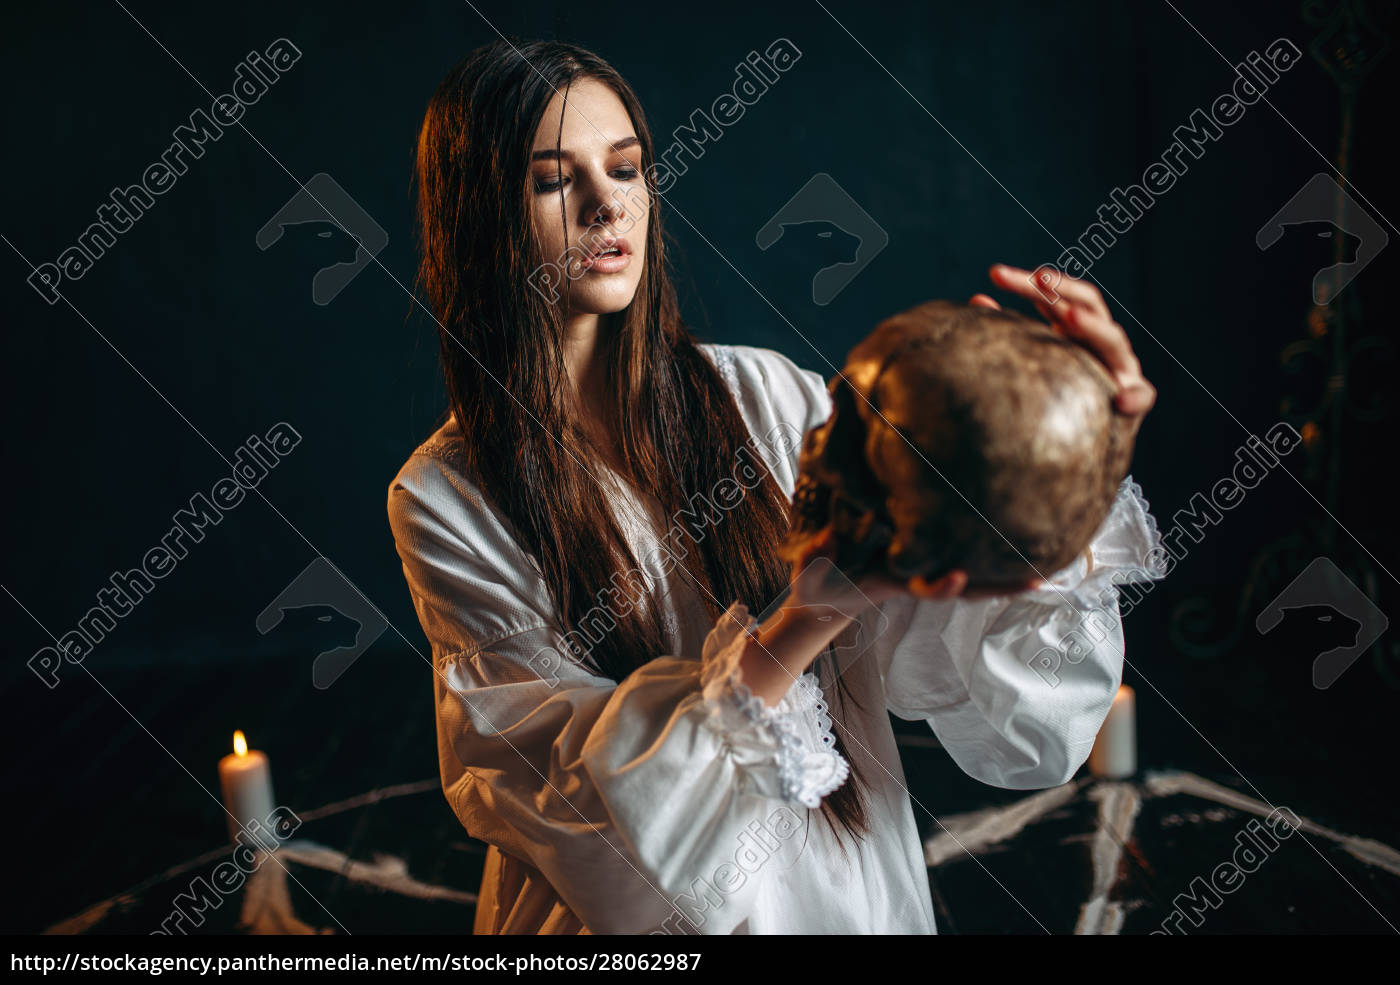 woman, holds, human, skull, in, hand, - 28062987